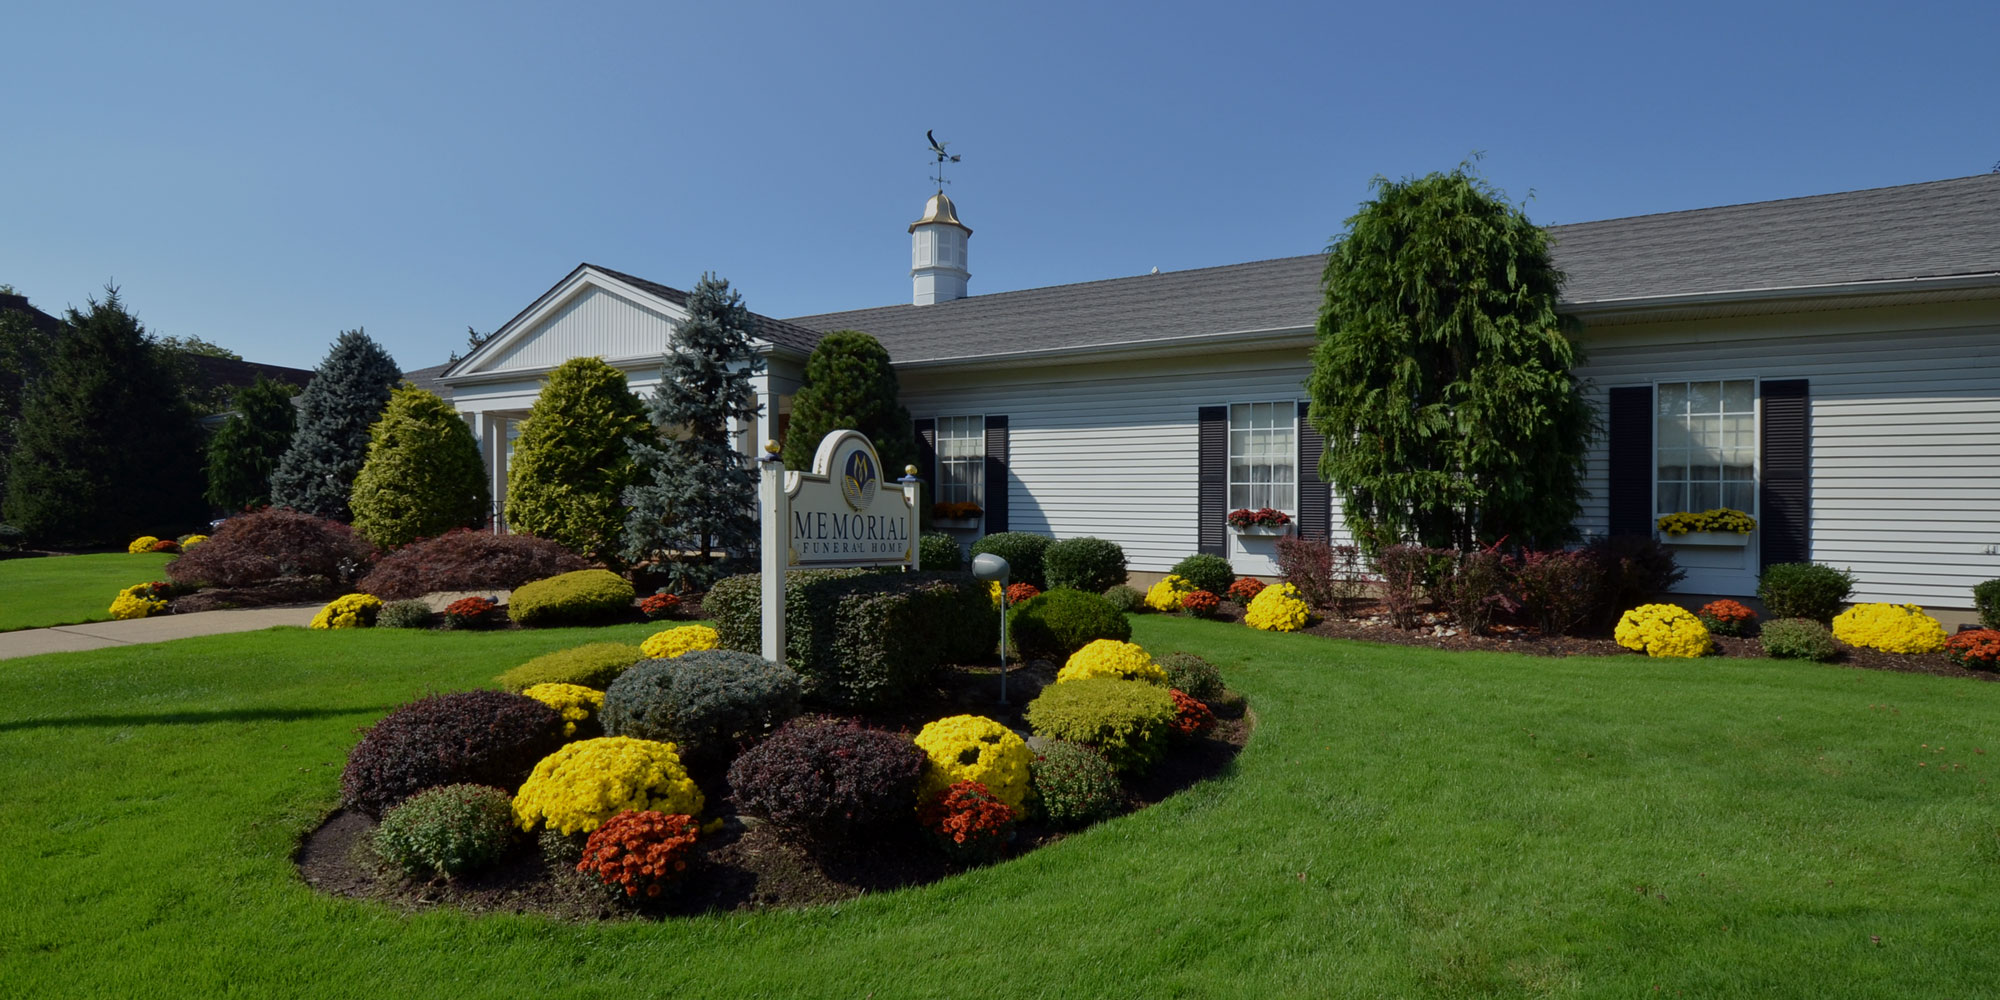 Memorial Funeral Home | Fanwood NJ Funeral Home & Cremation on